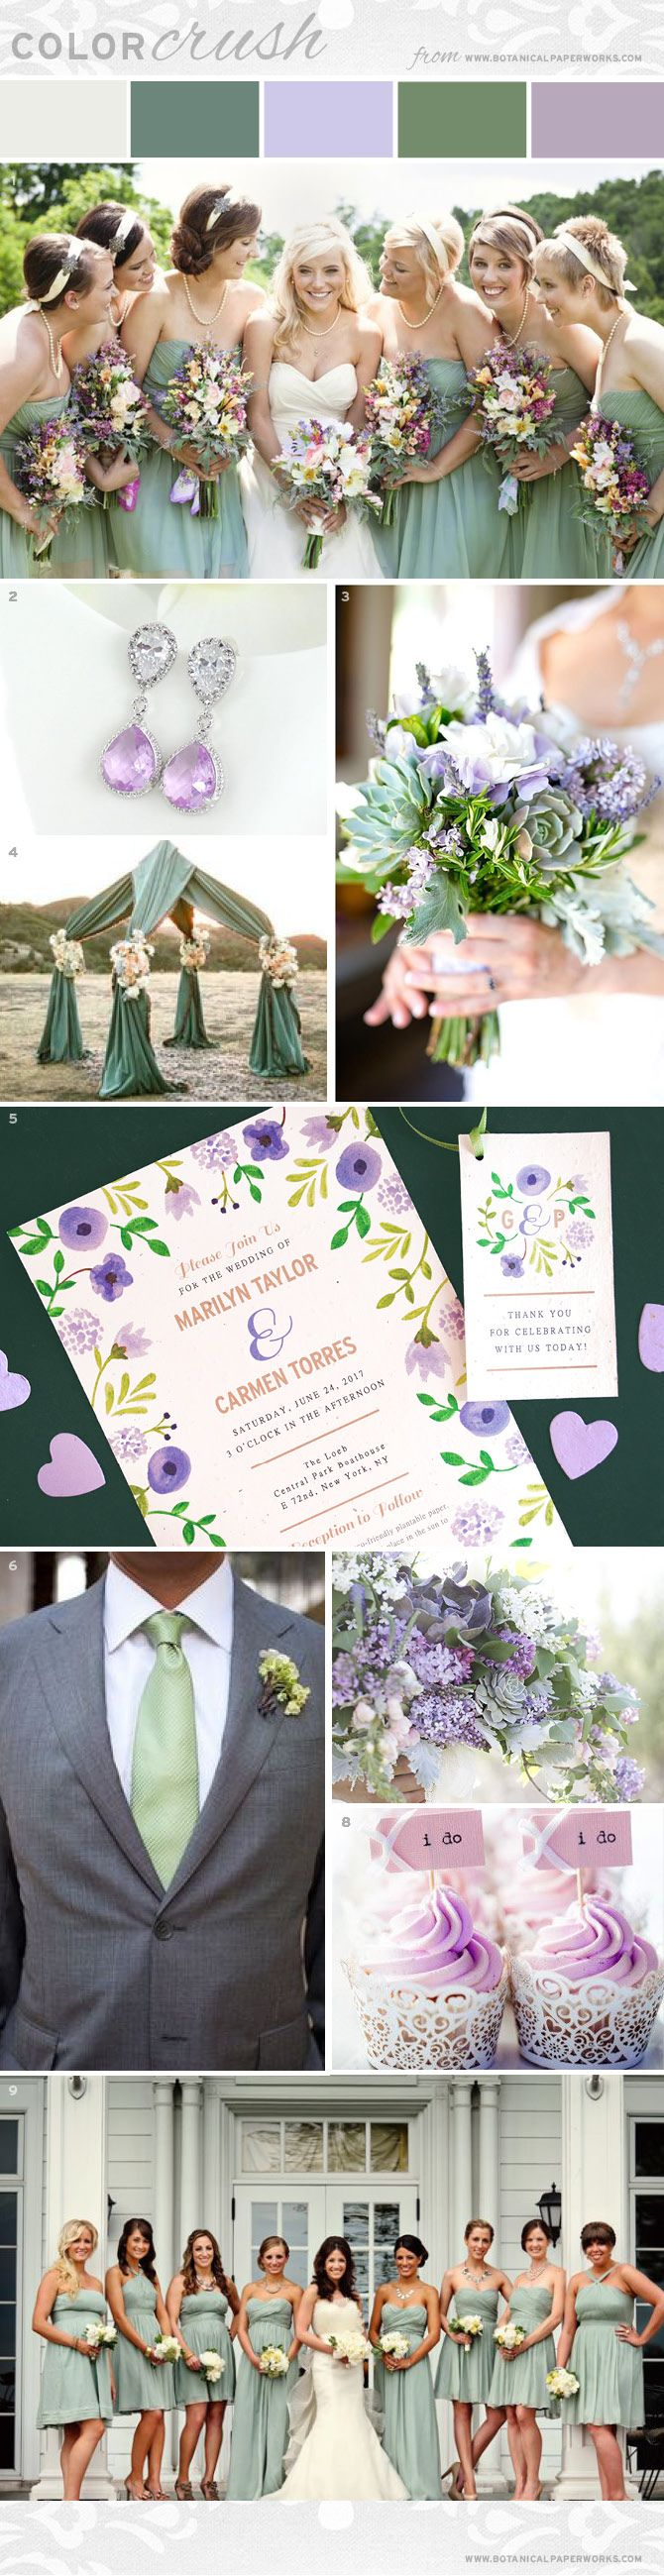 Elegant and wildly pretty, the combination of rustic sage, playful lilac and crisp white makes this #wedding inspiration board a swoon-worthy summer & #autumn palette!